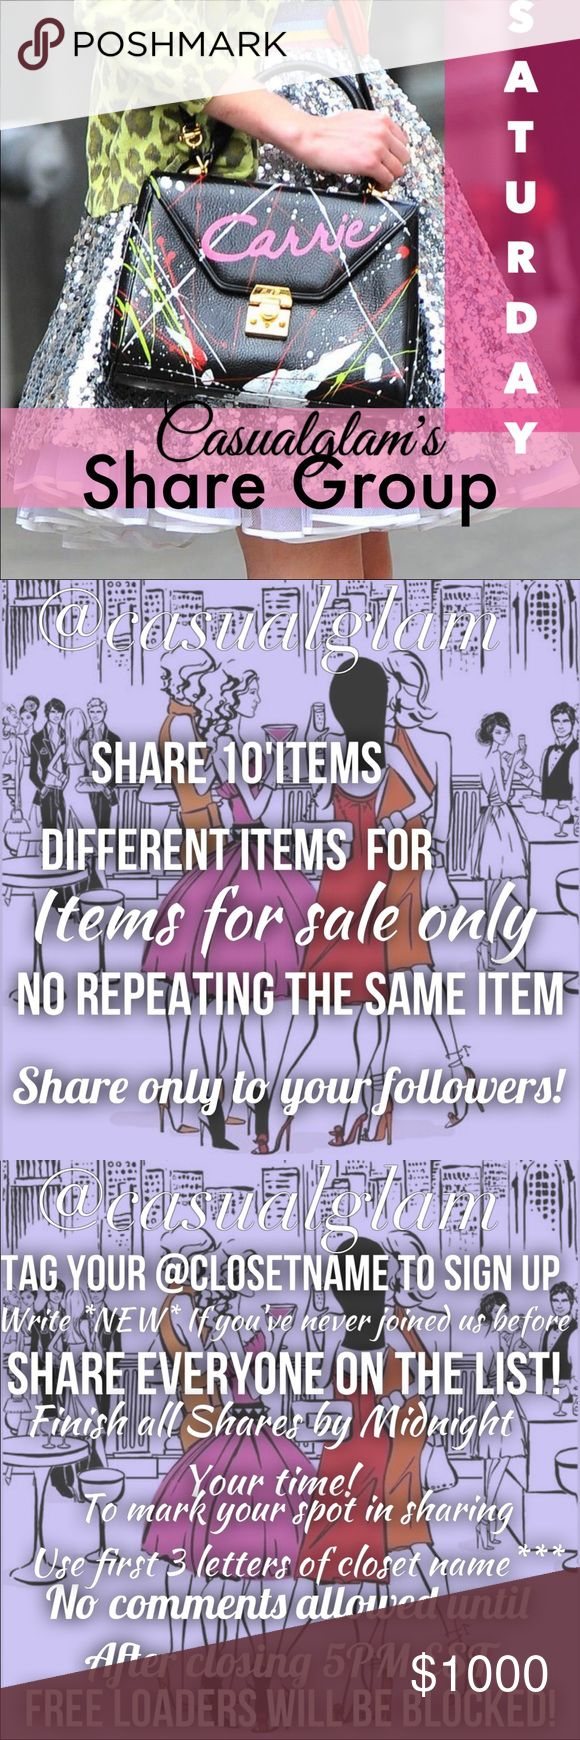 SATURDAY 4/22 💋SIGN UP SHEET Hello! Welcome to CASUALGLAM's share group, We celebrate sales we love new closets and meeting new fashionistas! Join us today we share 10 items per closet that signs up below. ❗️WE DONT SHARE CLOSETS THAT SIGN UP AFTER COMMENT OF*** CLOSED**** has been posted anyone who signs up after that will be SKIPPED/NOT SHARED.  ❗️Please refrain from making comments until sign up is closed💋If any non-shares please report to me on Q&A forum please don't call anyone ouT…